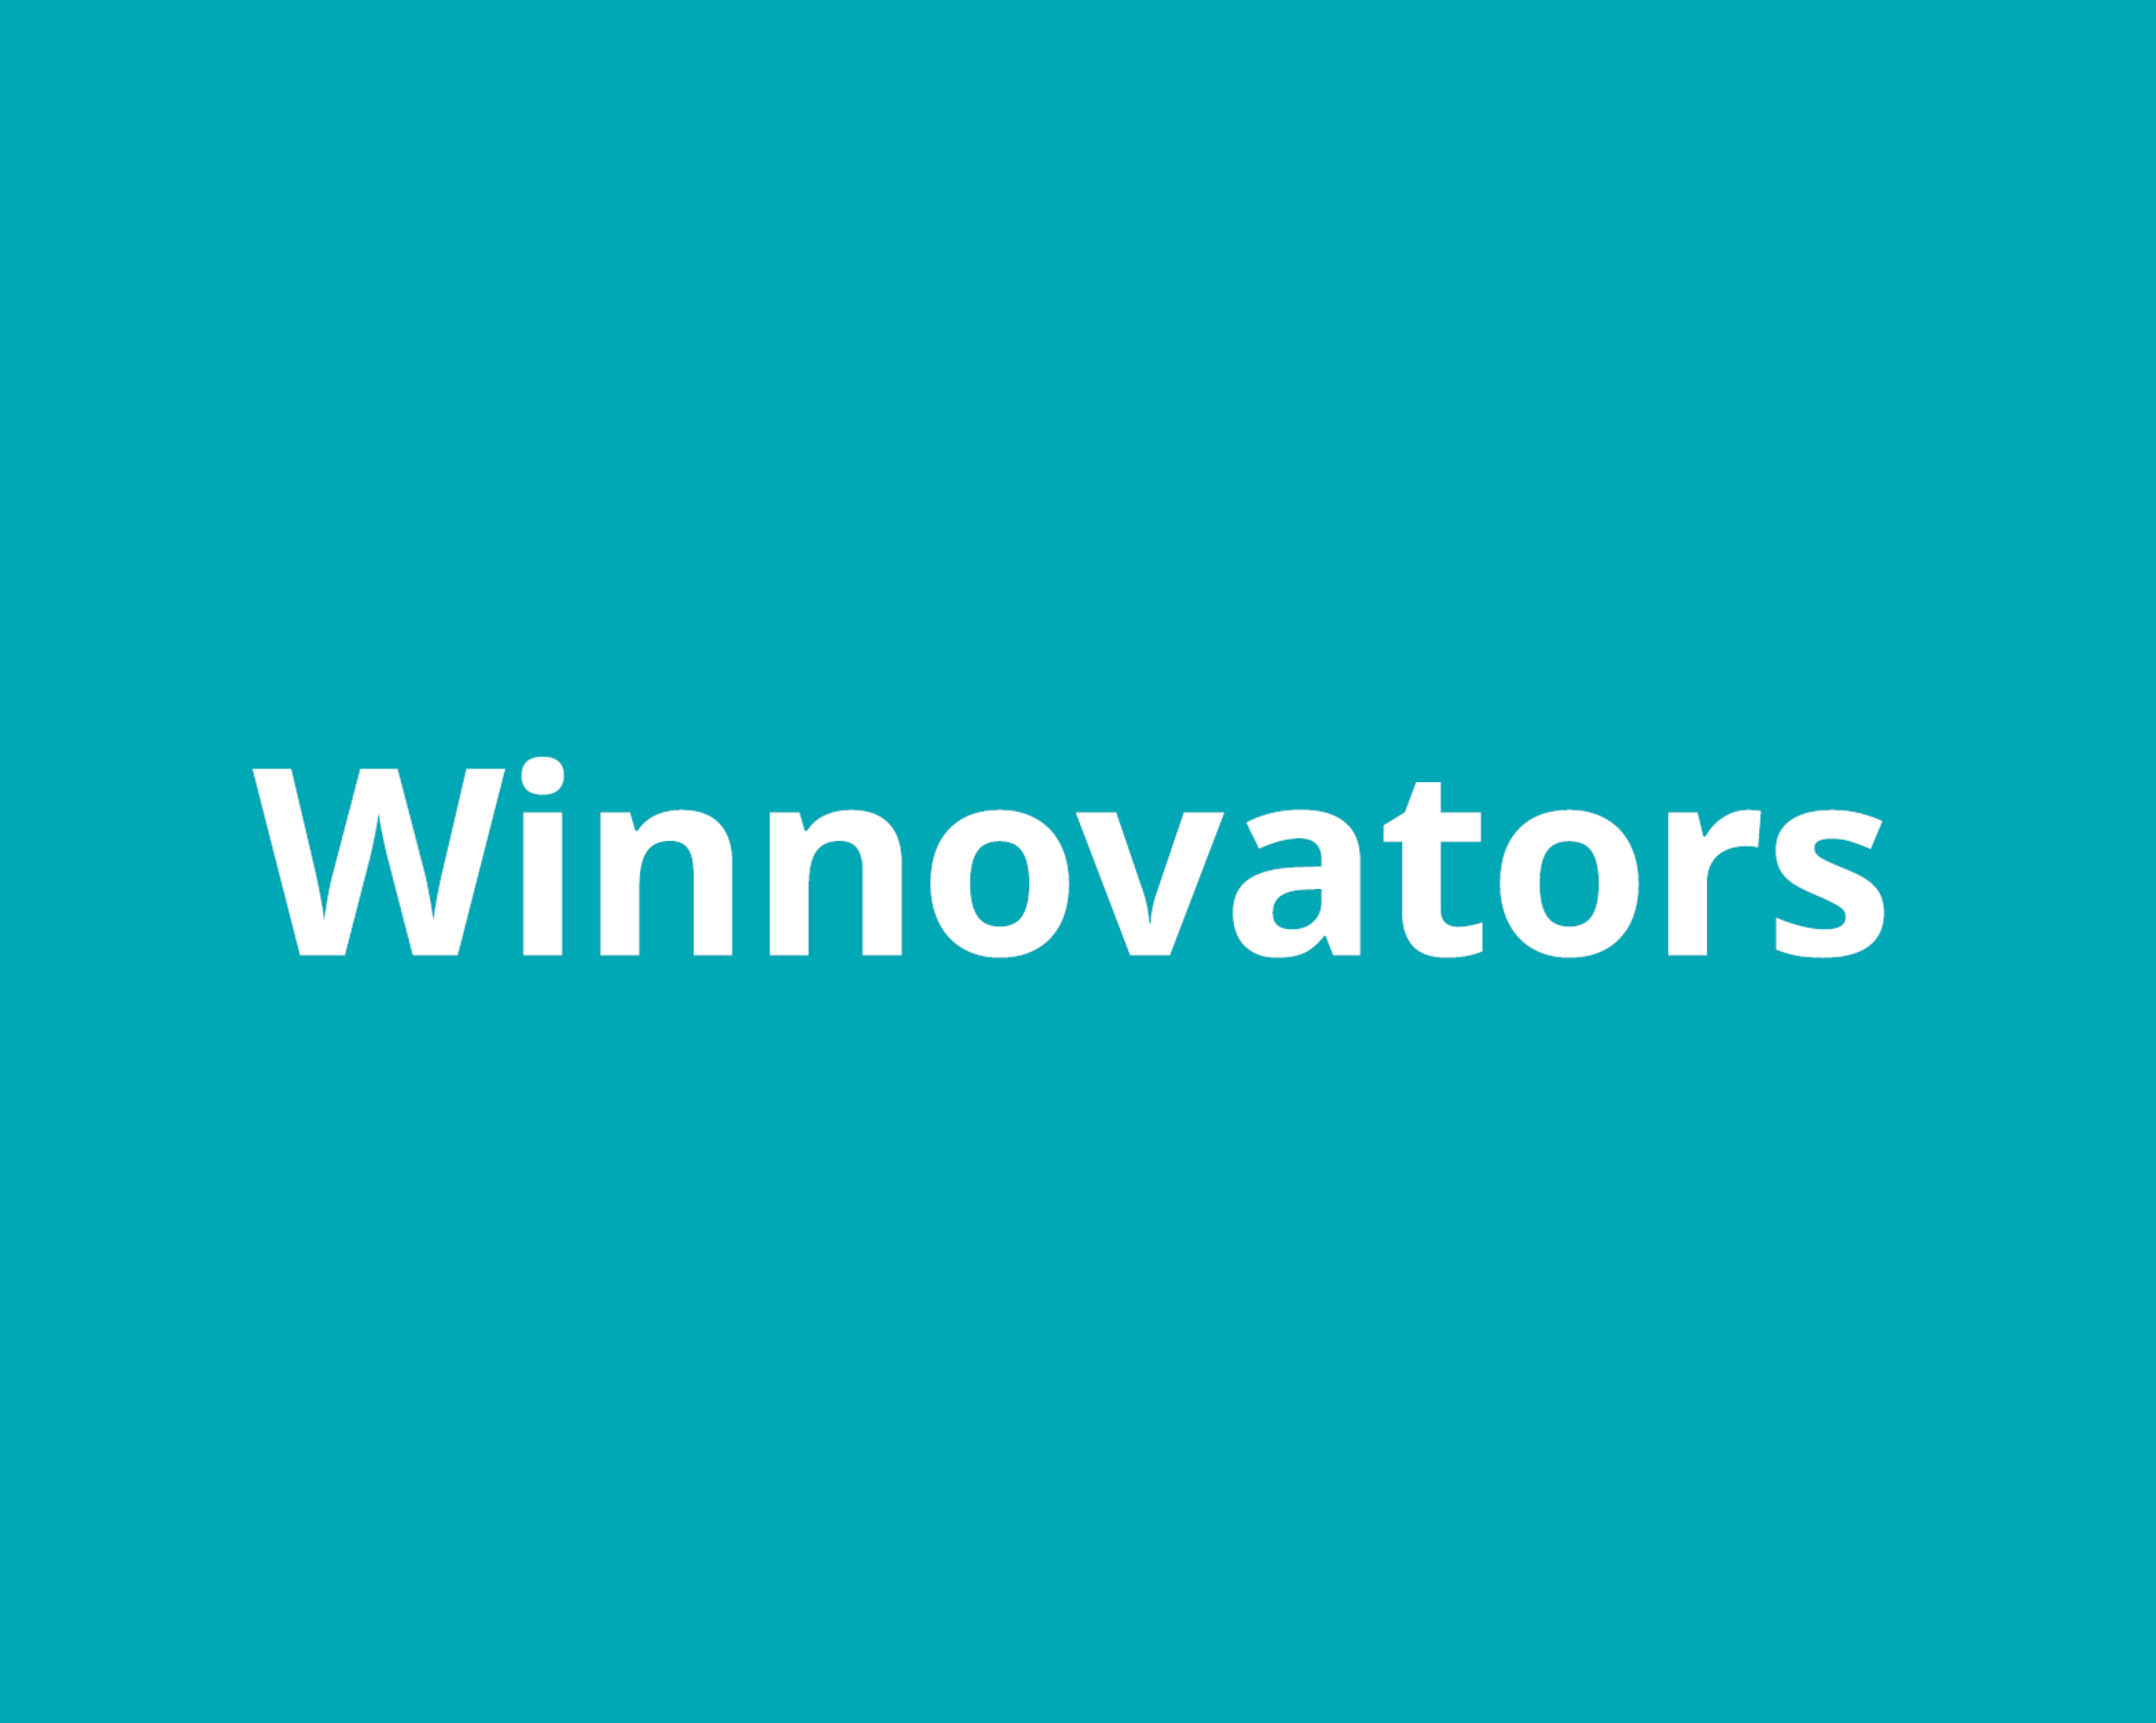 Winnovators